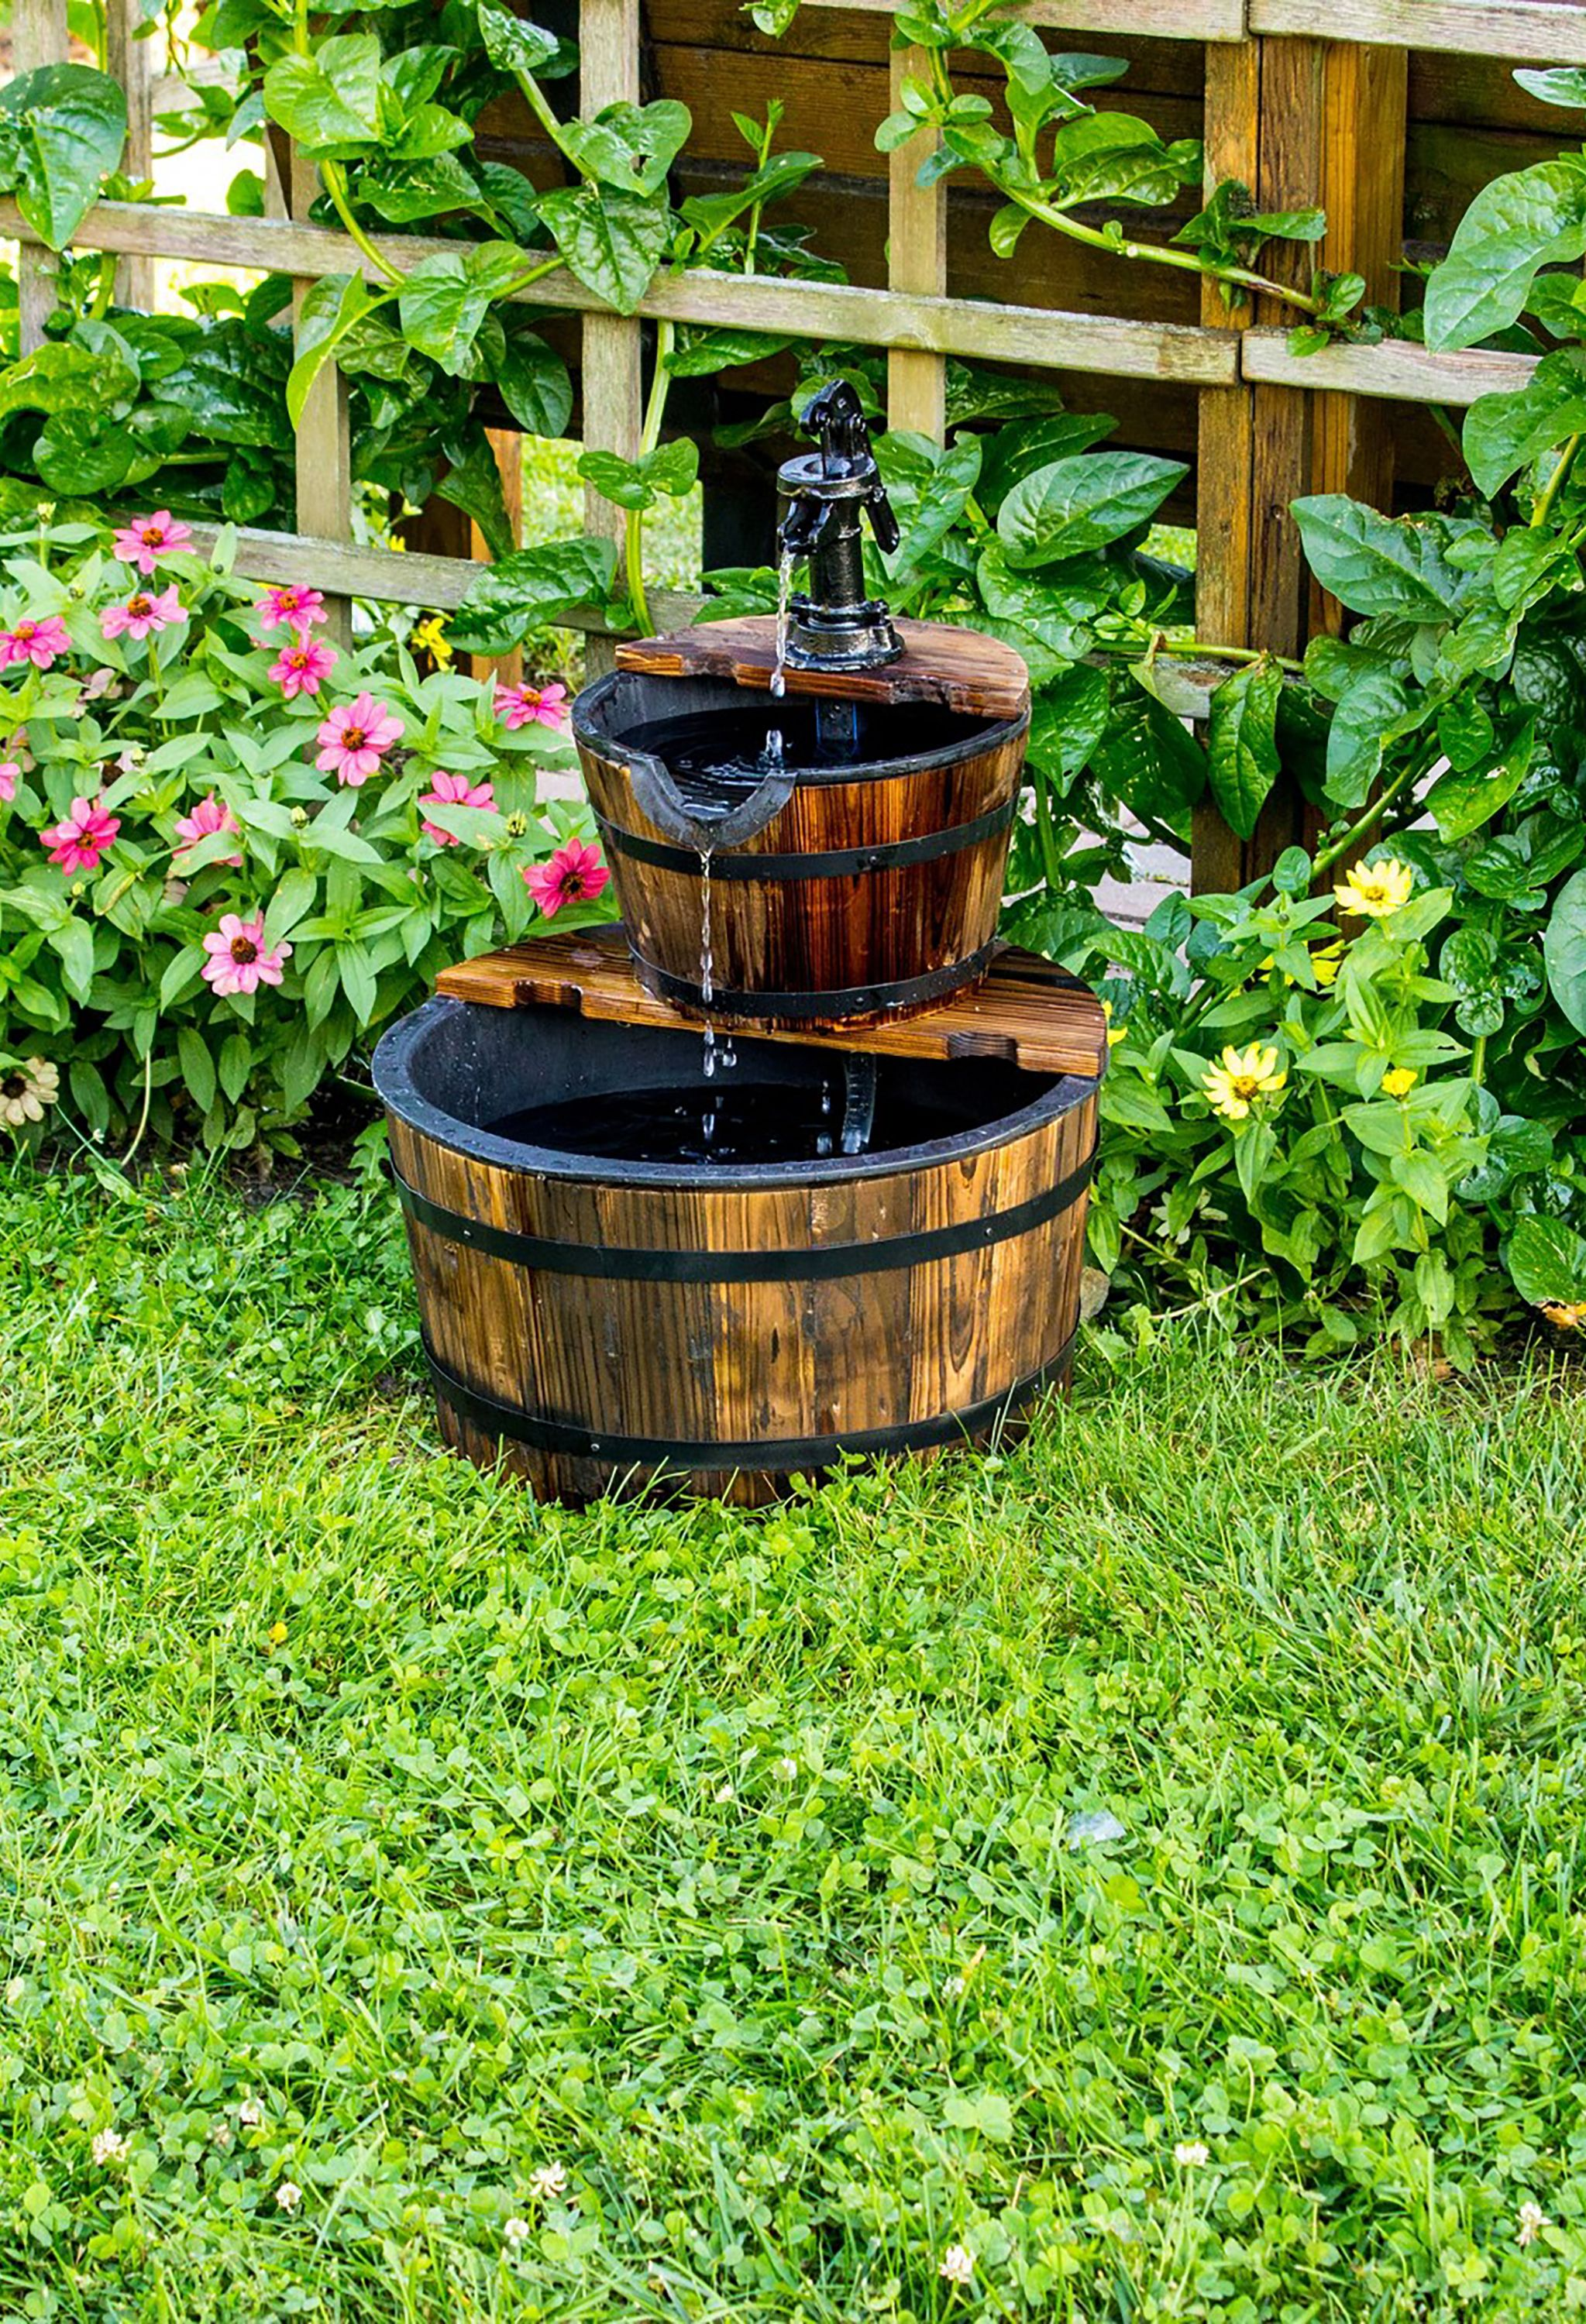 22 Outdoor Fountain Ideas How To Make a Garden Fountain for Your